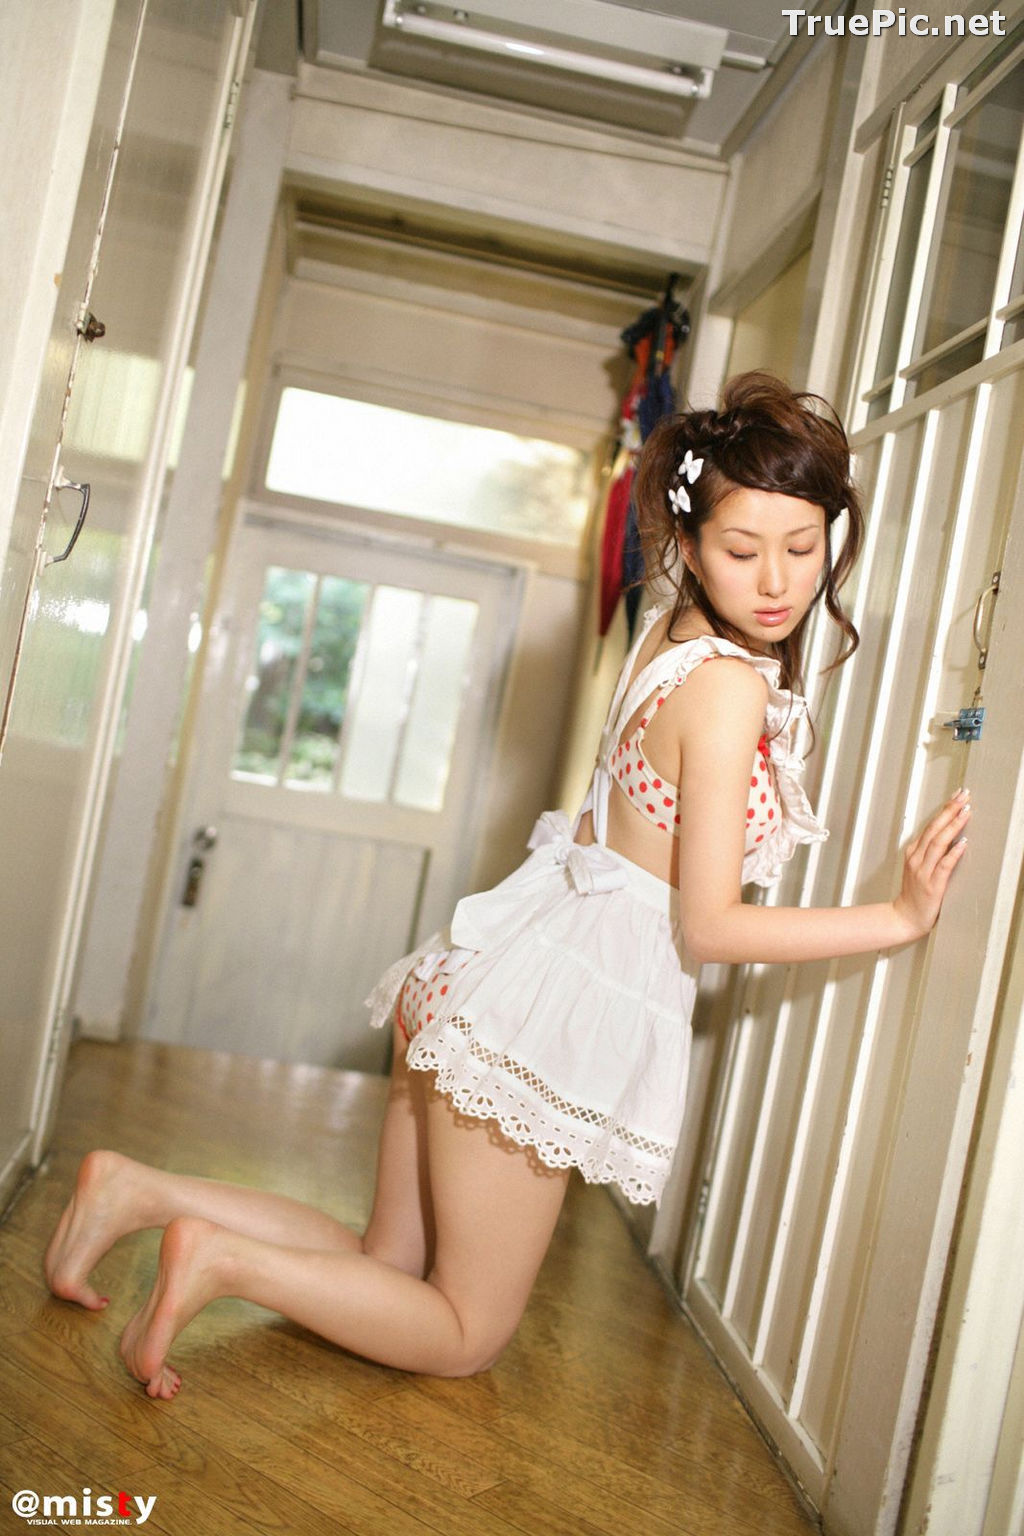 Image Misty No.217 - Japanese Actress and Gravure Idol - Saki Seto - TruePic.net - Picture-8